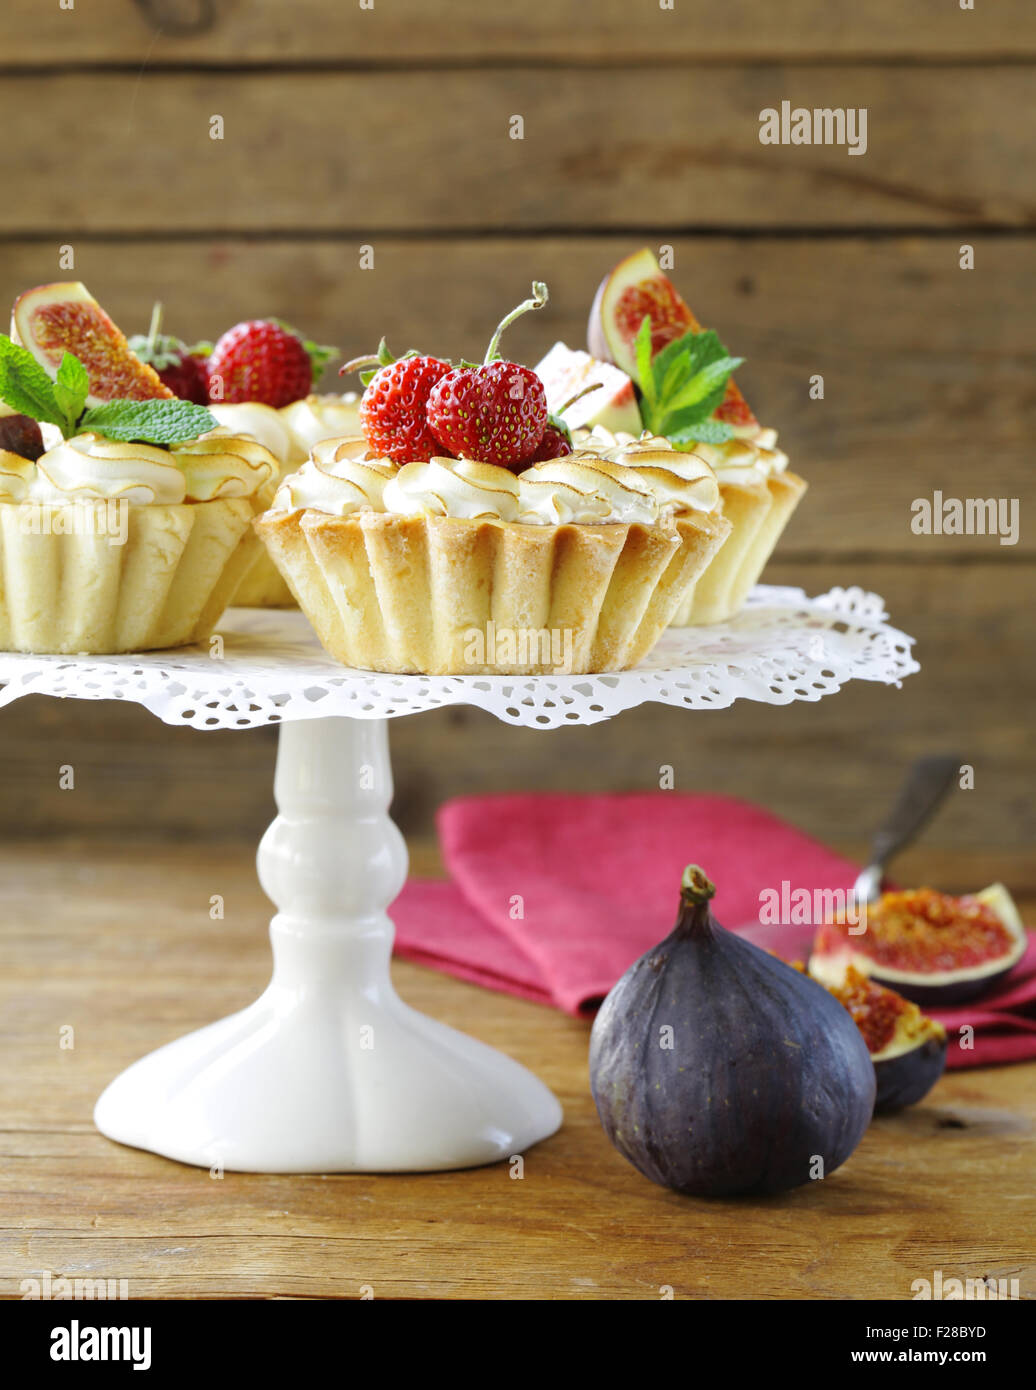 dessert tartlets from shortcrust pastry with meringue and fruit - Stock Image